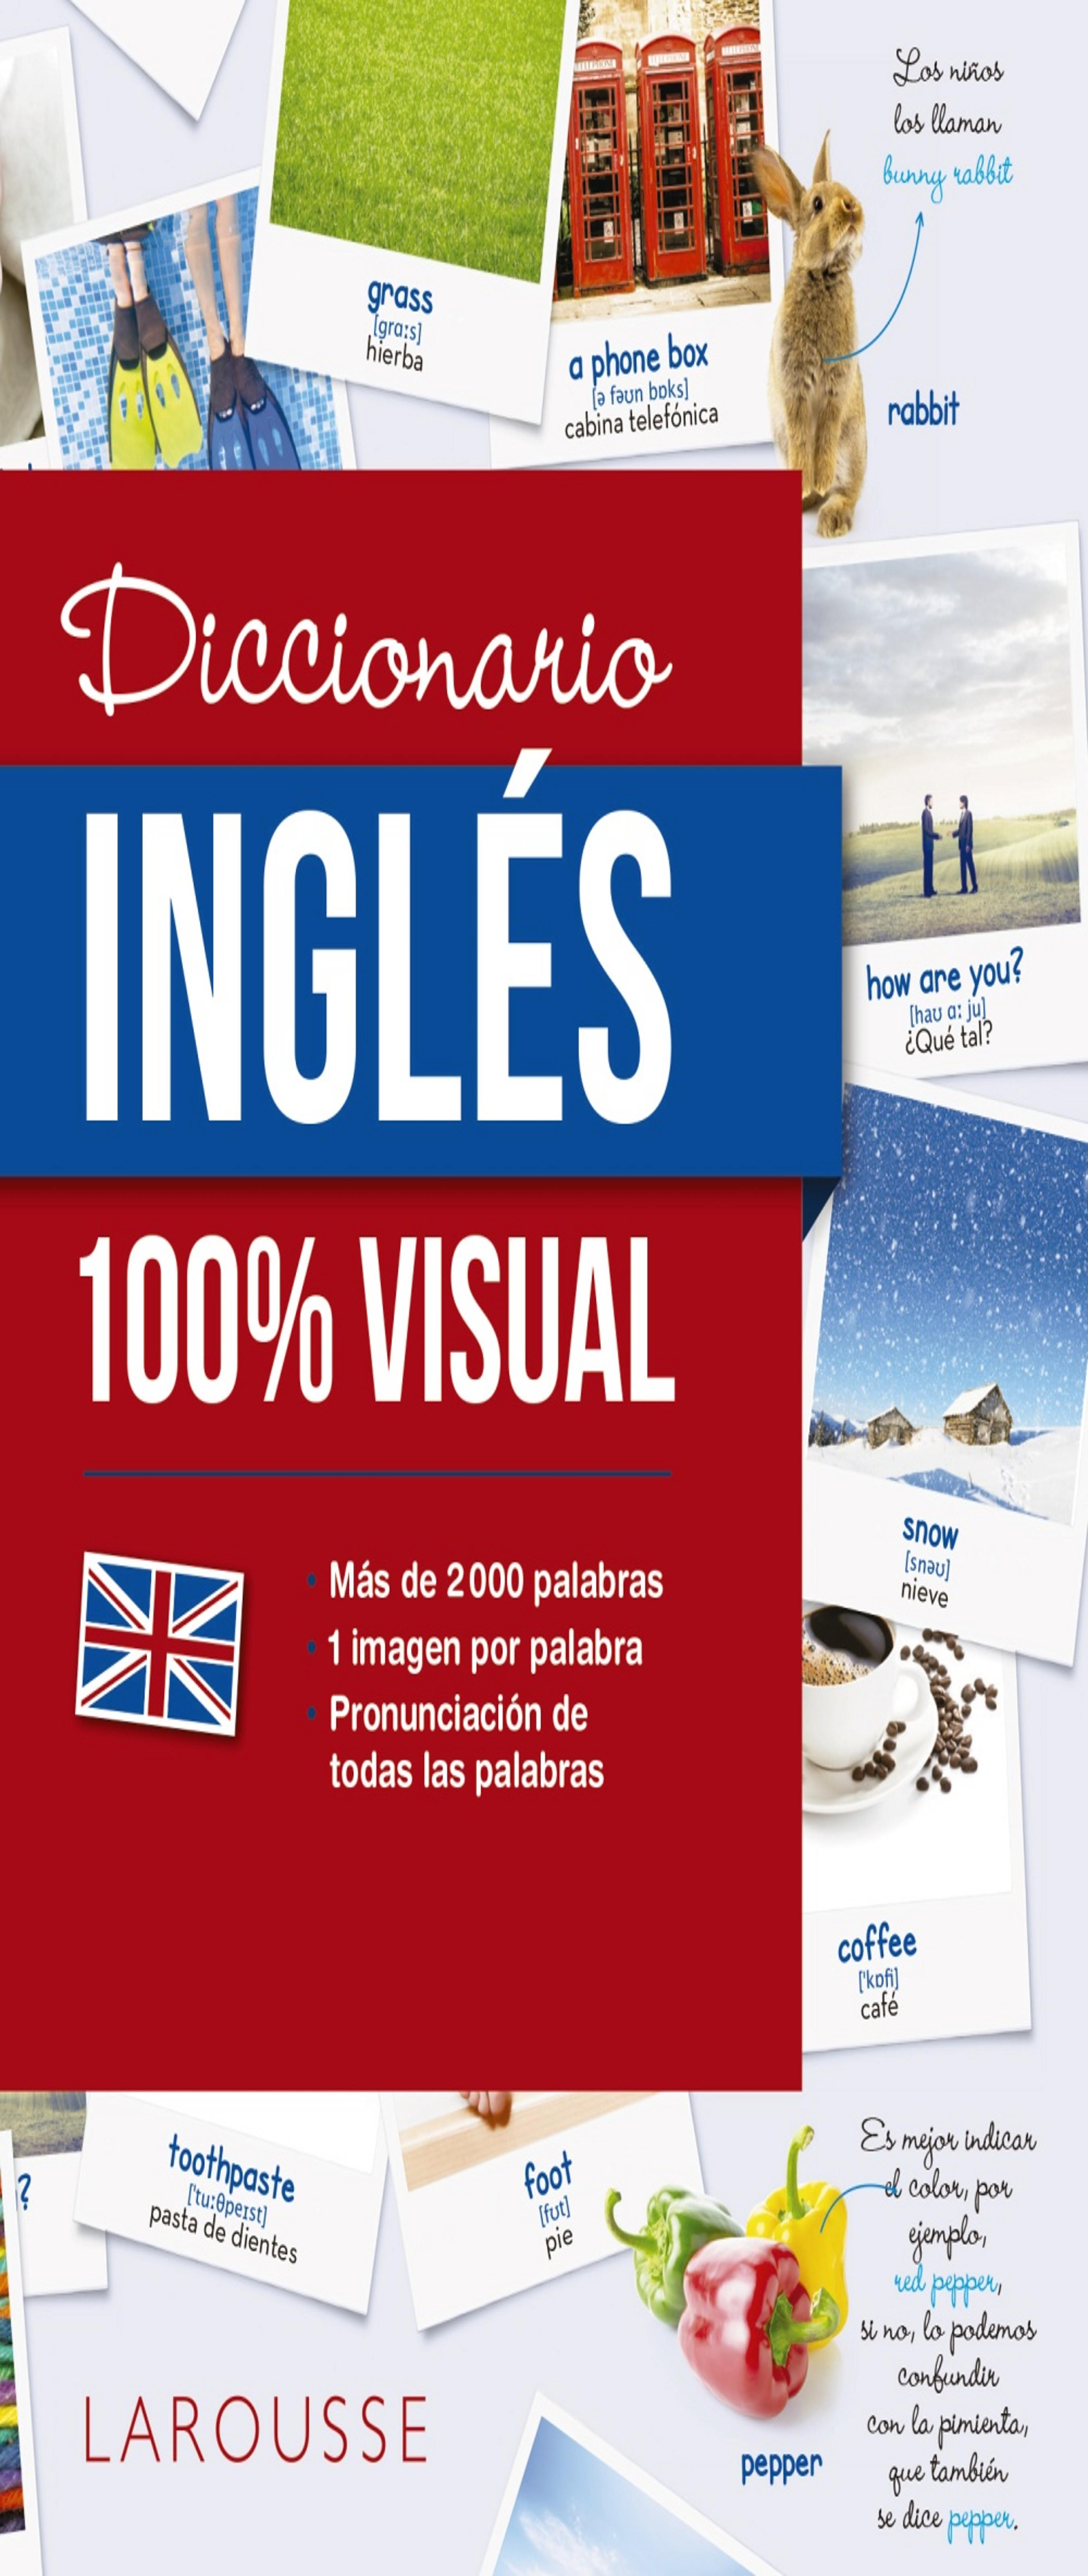 DICCIONARIO INGLES 100% VISUAL